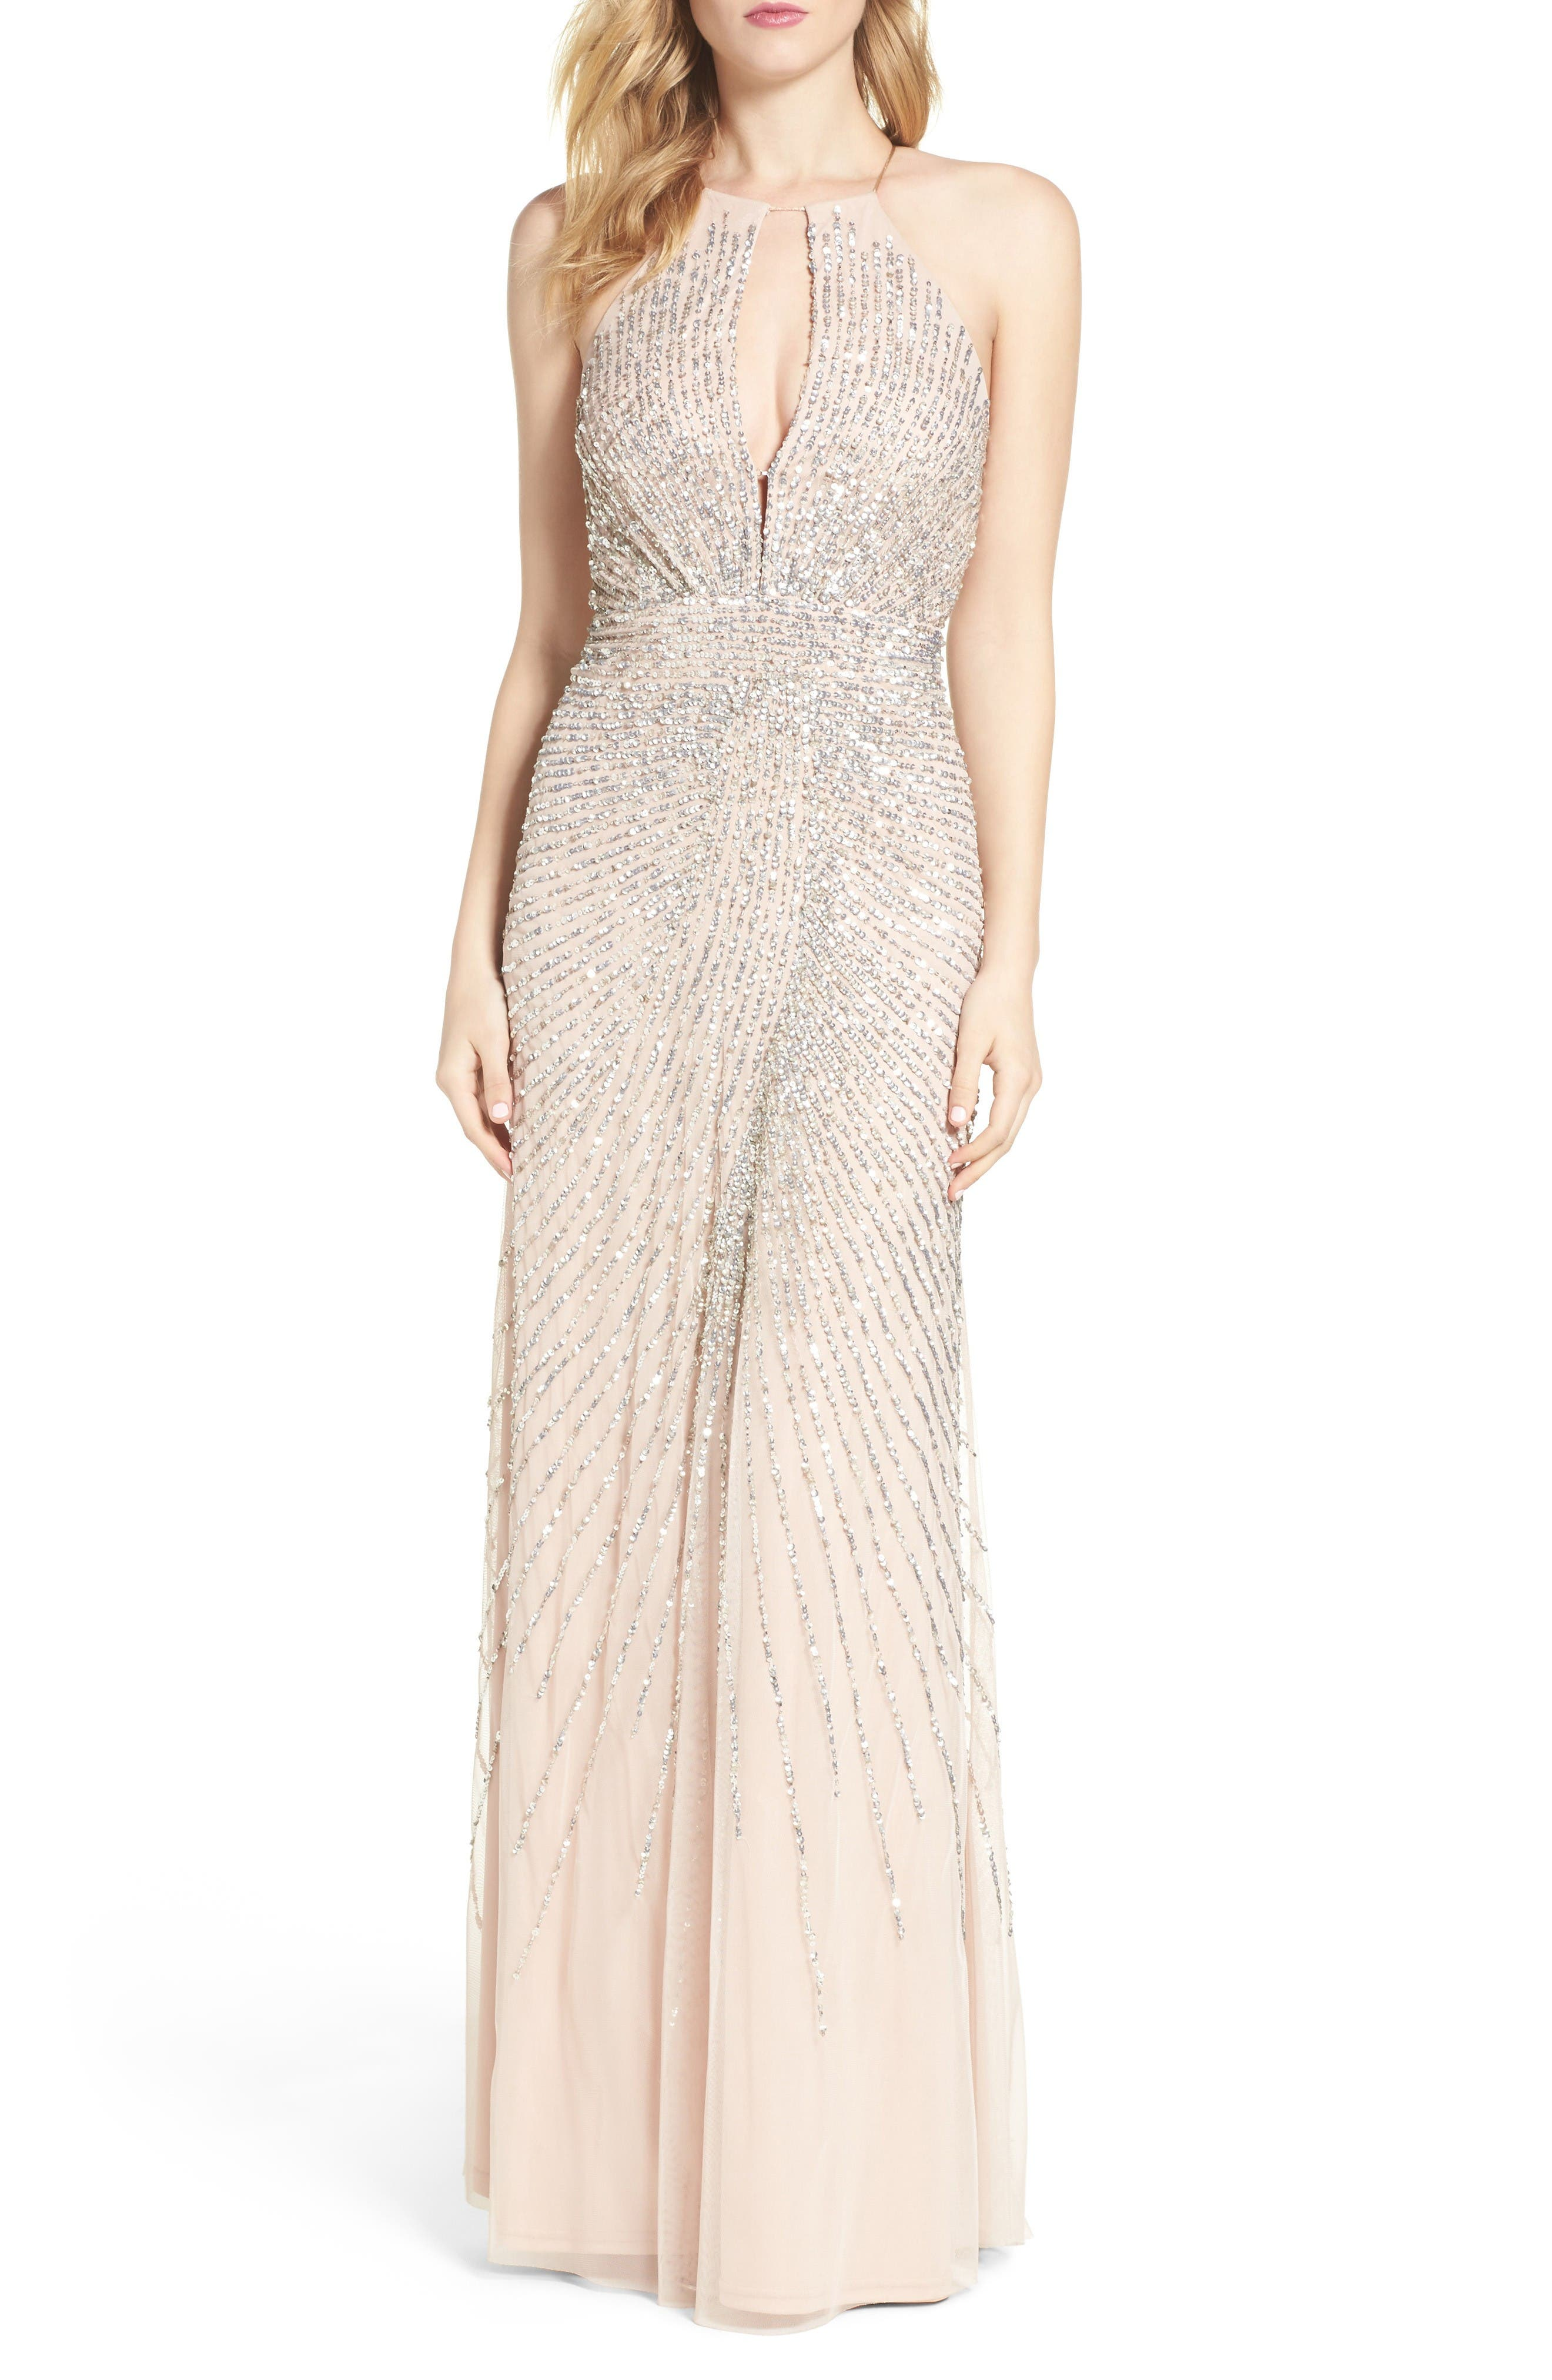 Alternate Image 1 Selected - Adrianna Papell Beaded Mesh Fit & Flare Gown